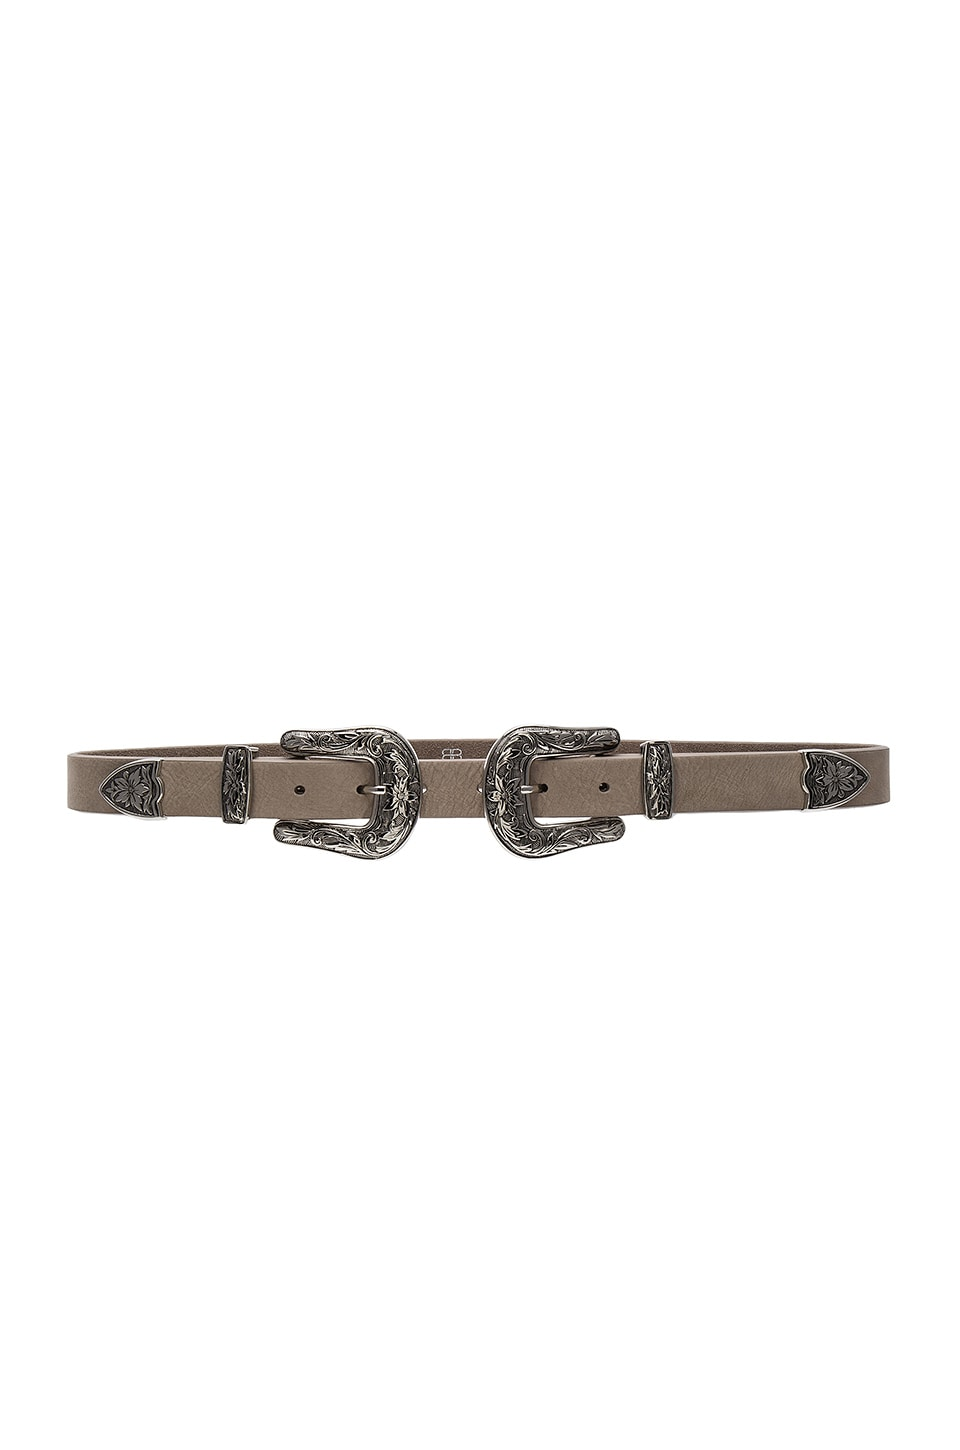 Baby Bri Bri Nubuck Belt by B-Low the Belt